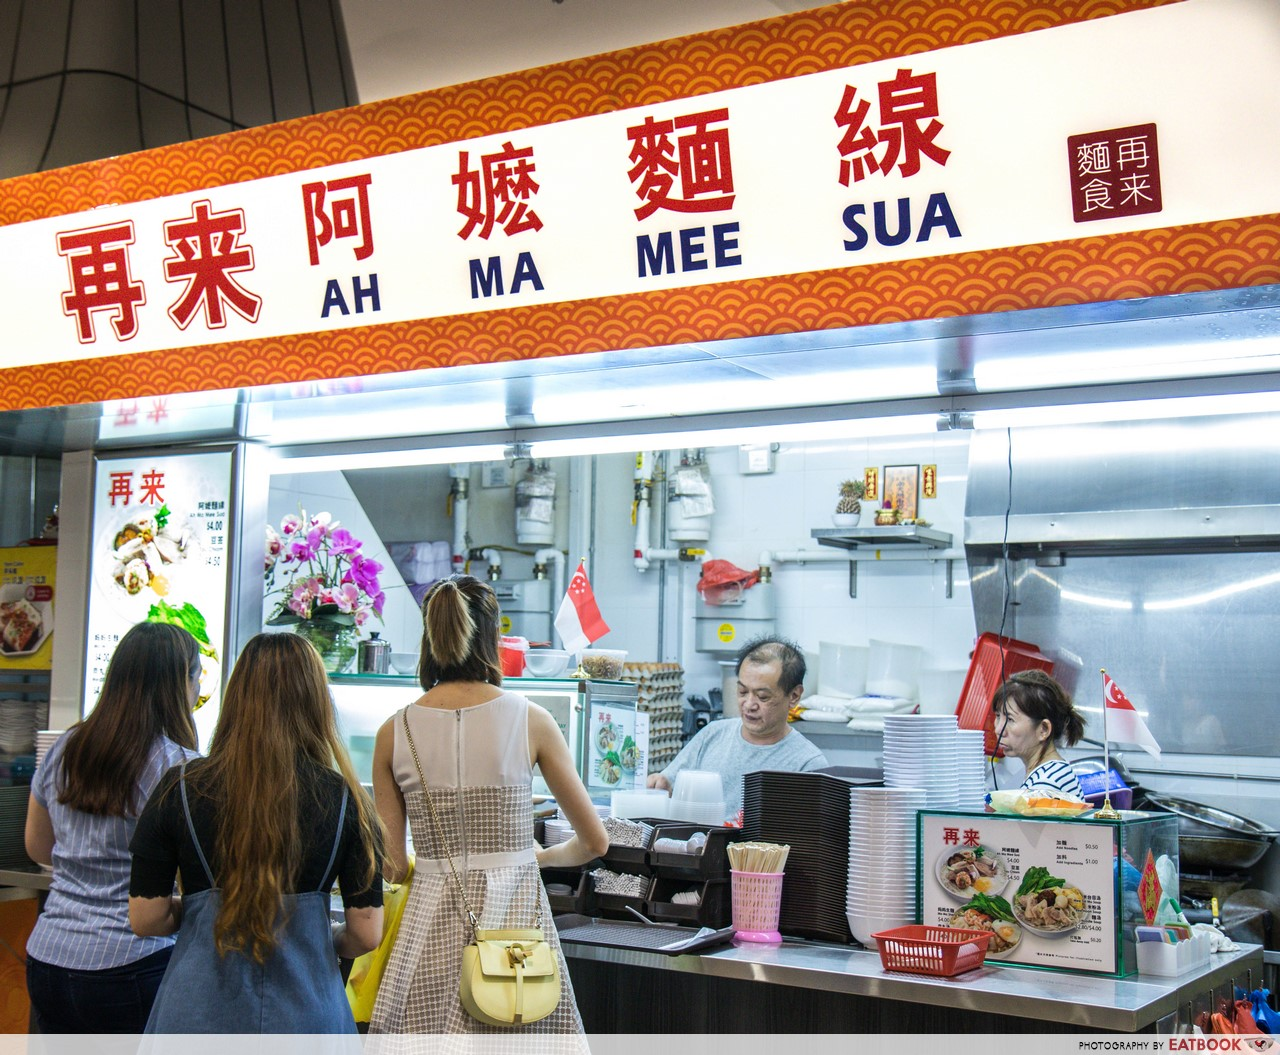 Kampung Admiralty Hawker Centre - ah ma mee sua